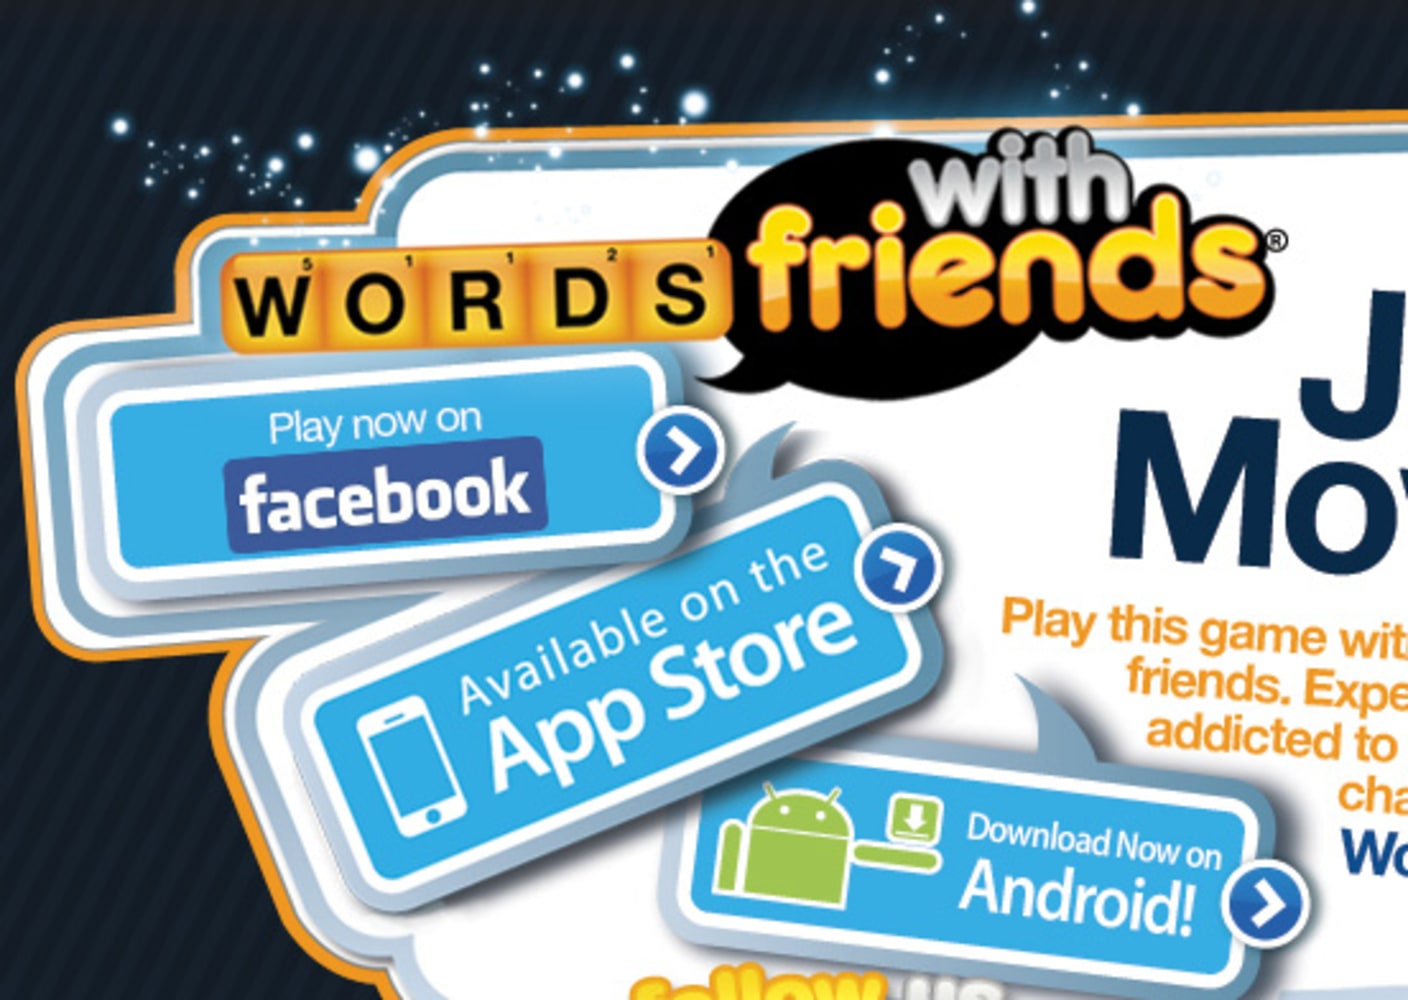 'Words with Friends' maker takes 'Bangwith Friends' to court over name